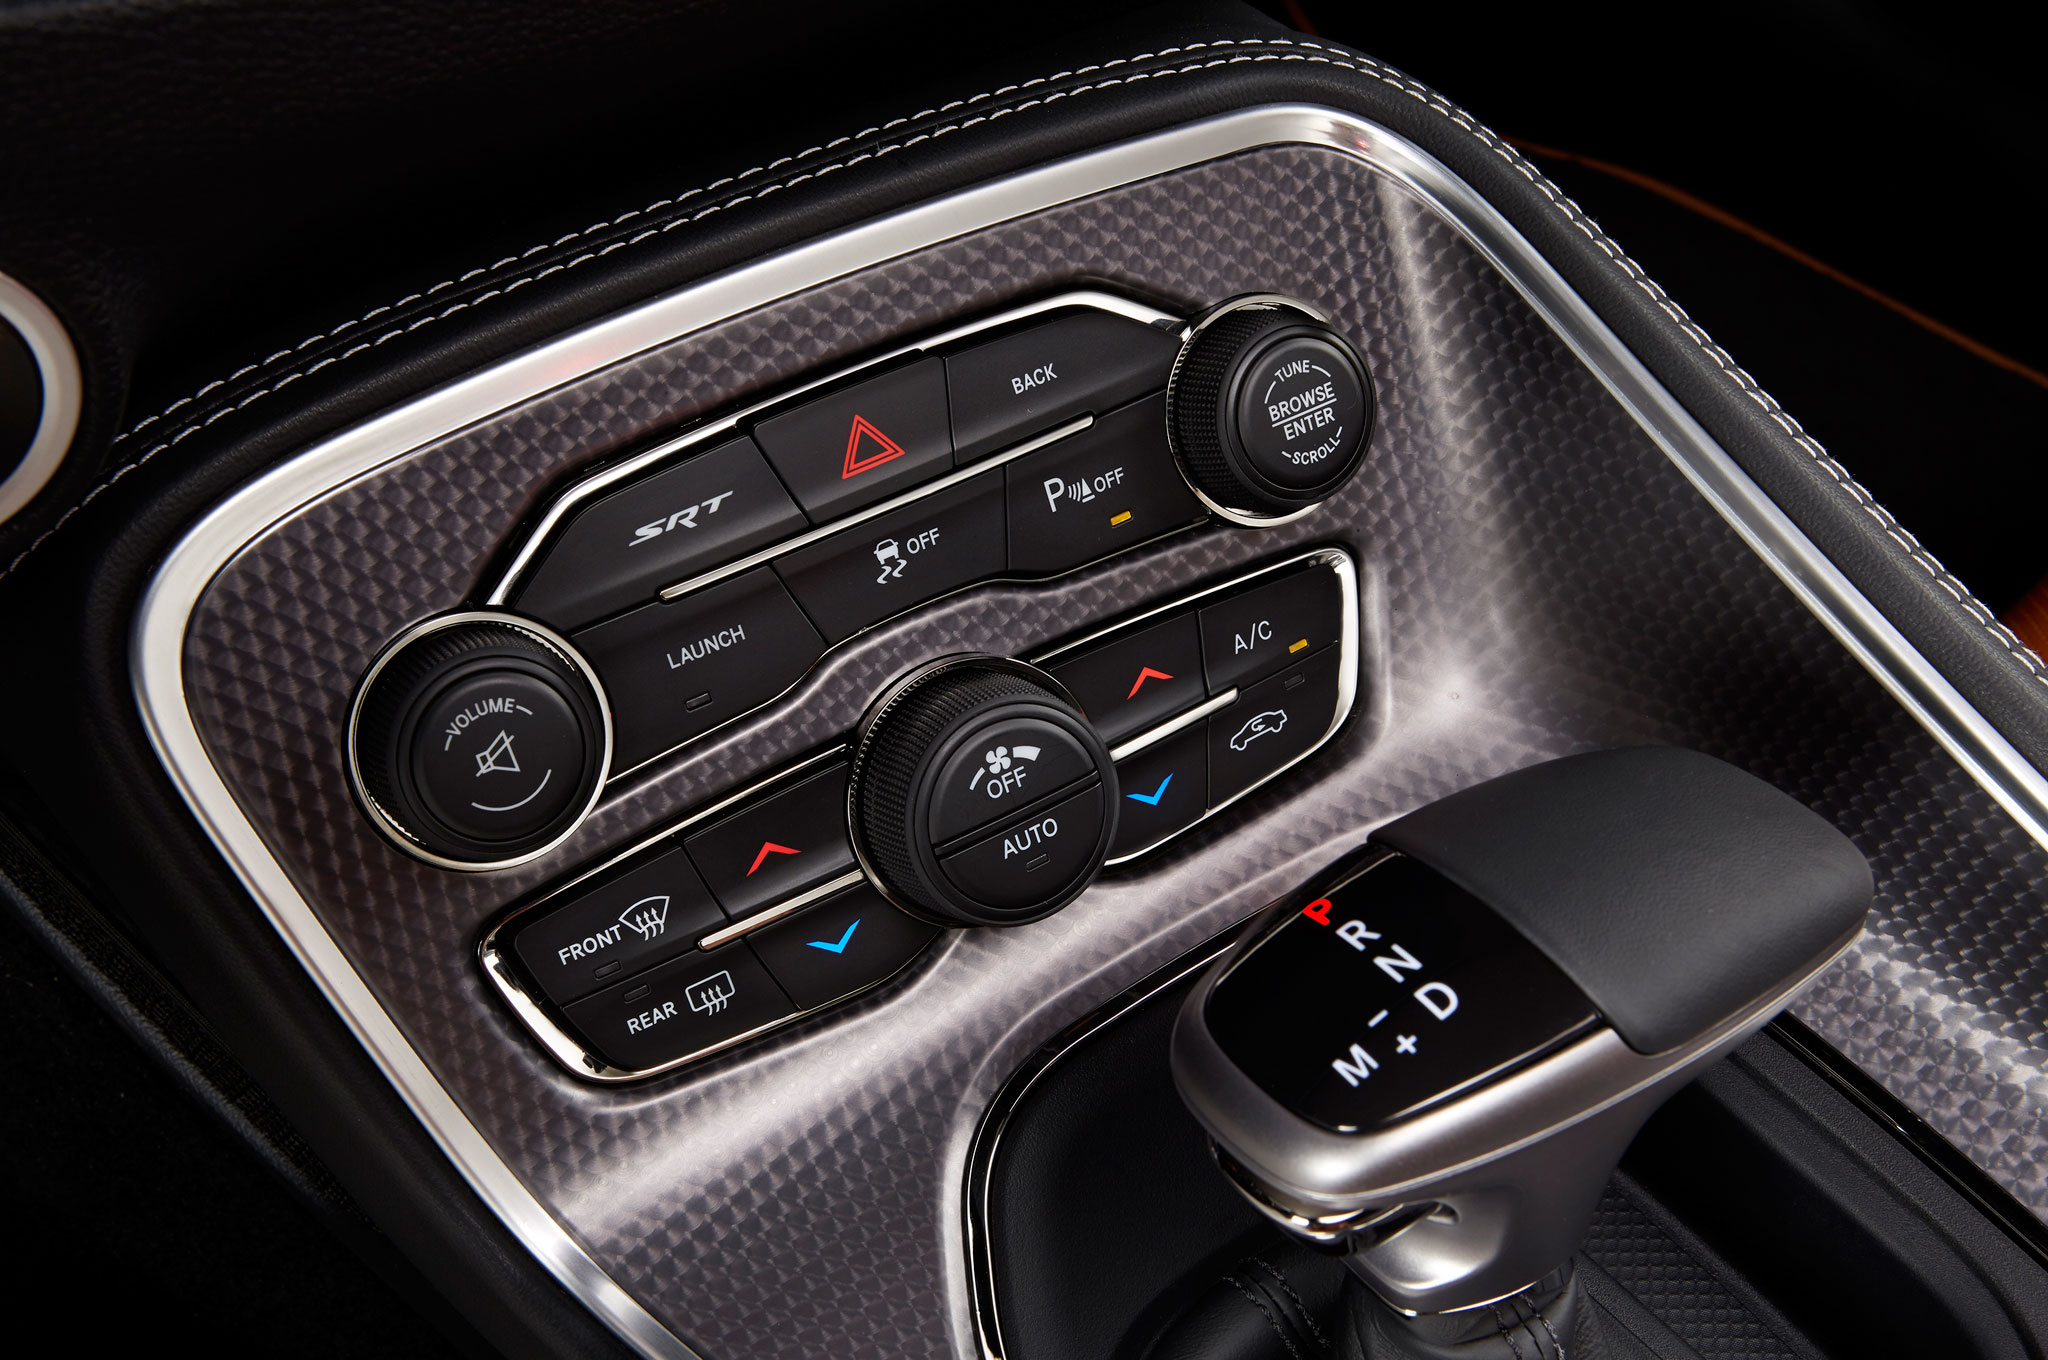 2015 Dodge Challenger Head Unit And Control (Photo 34 of 39)